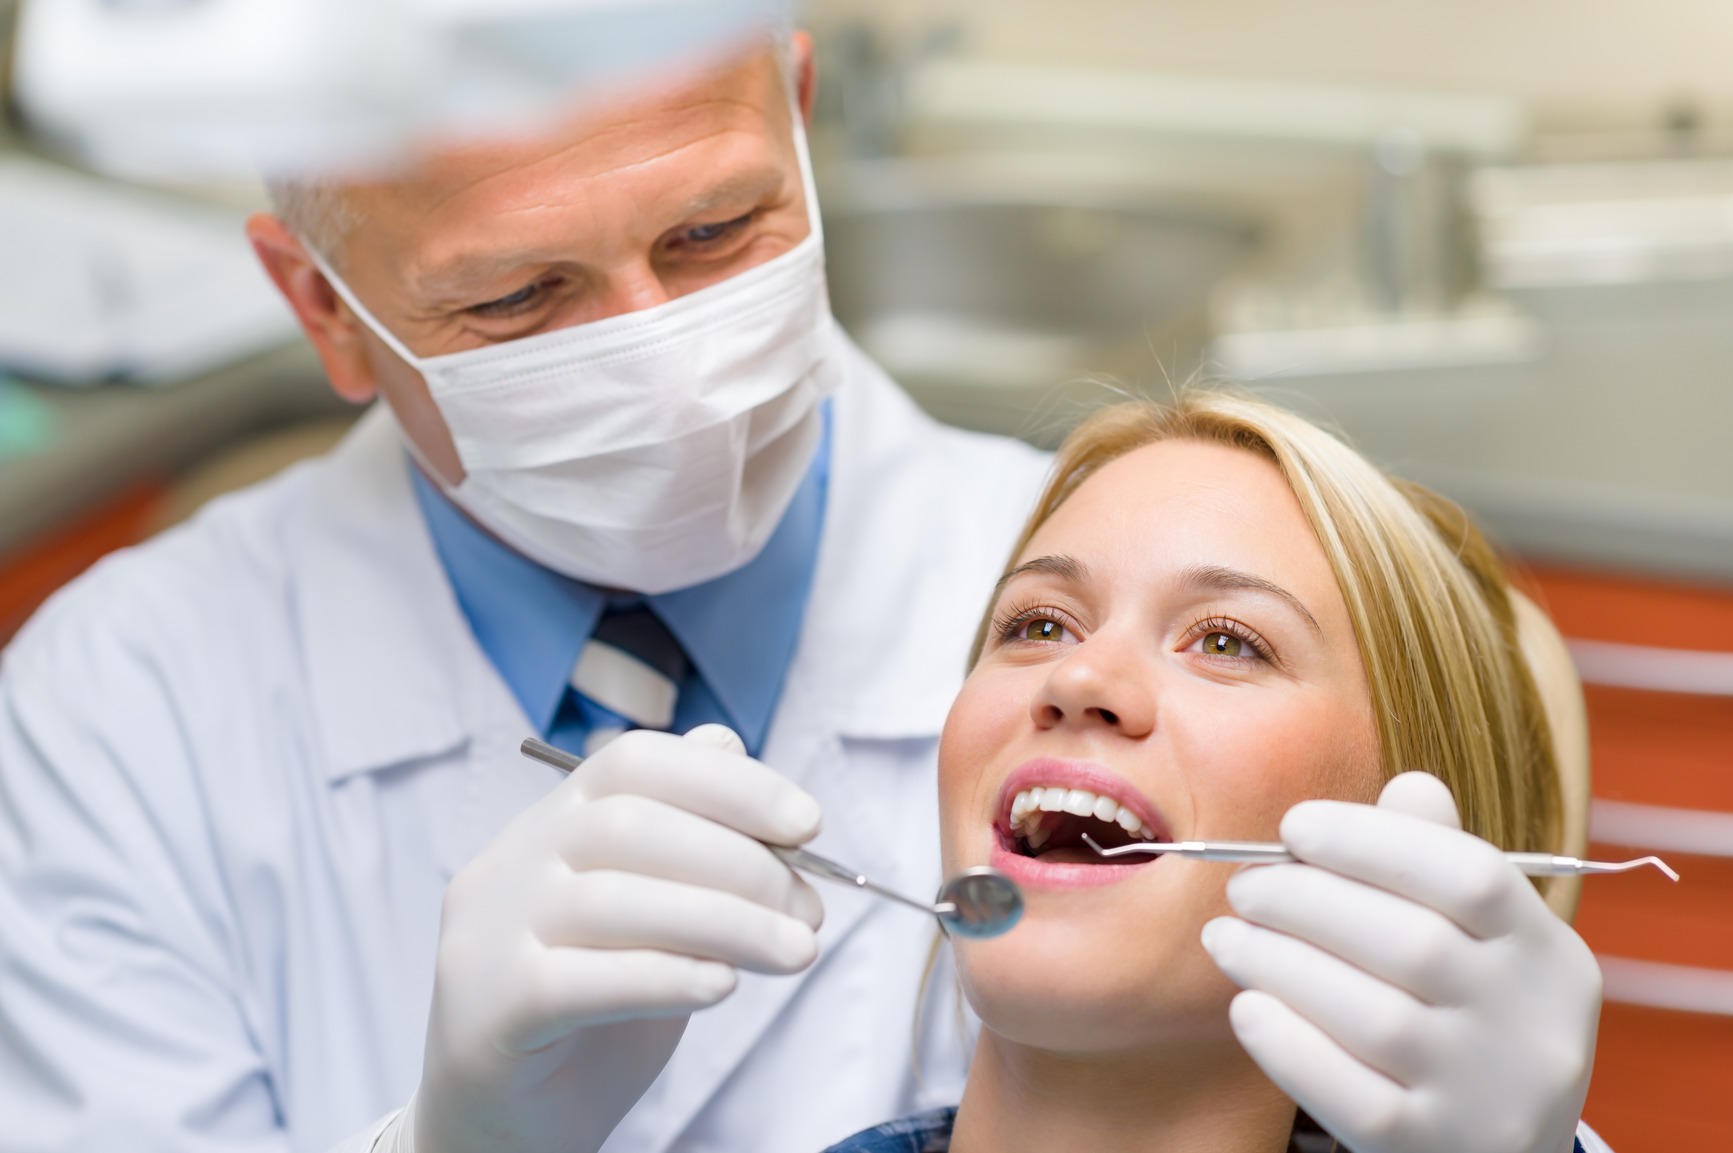 Healthy teeth patient at dentist office